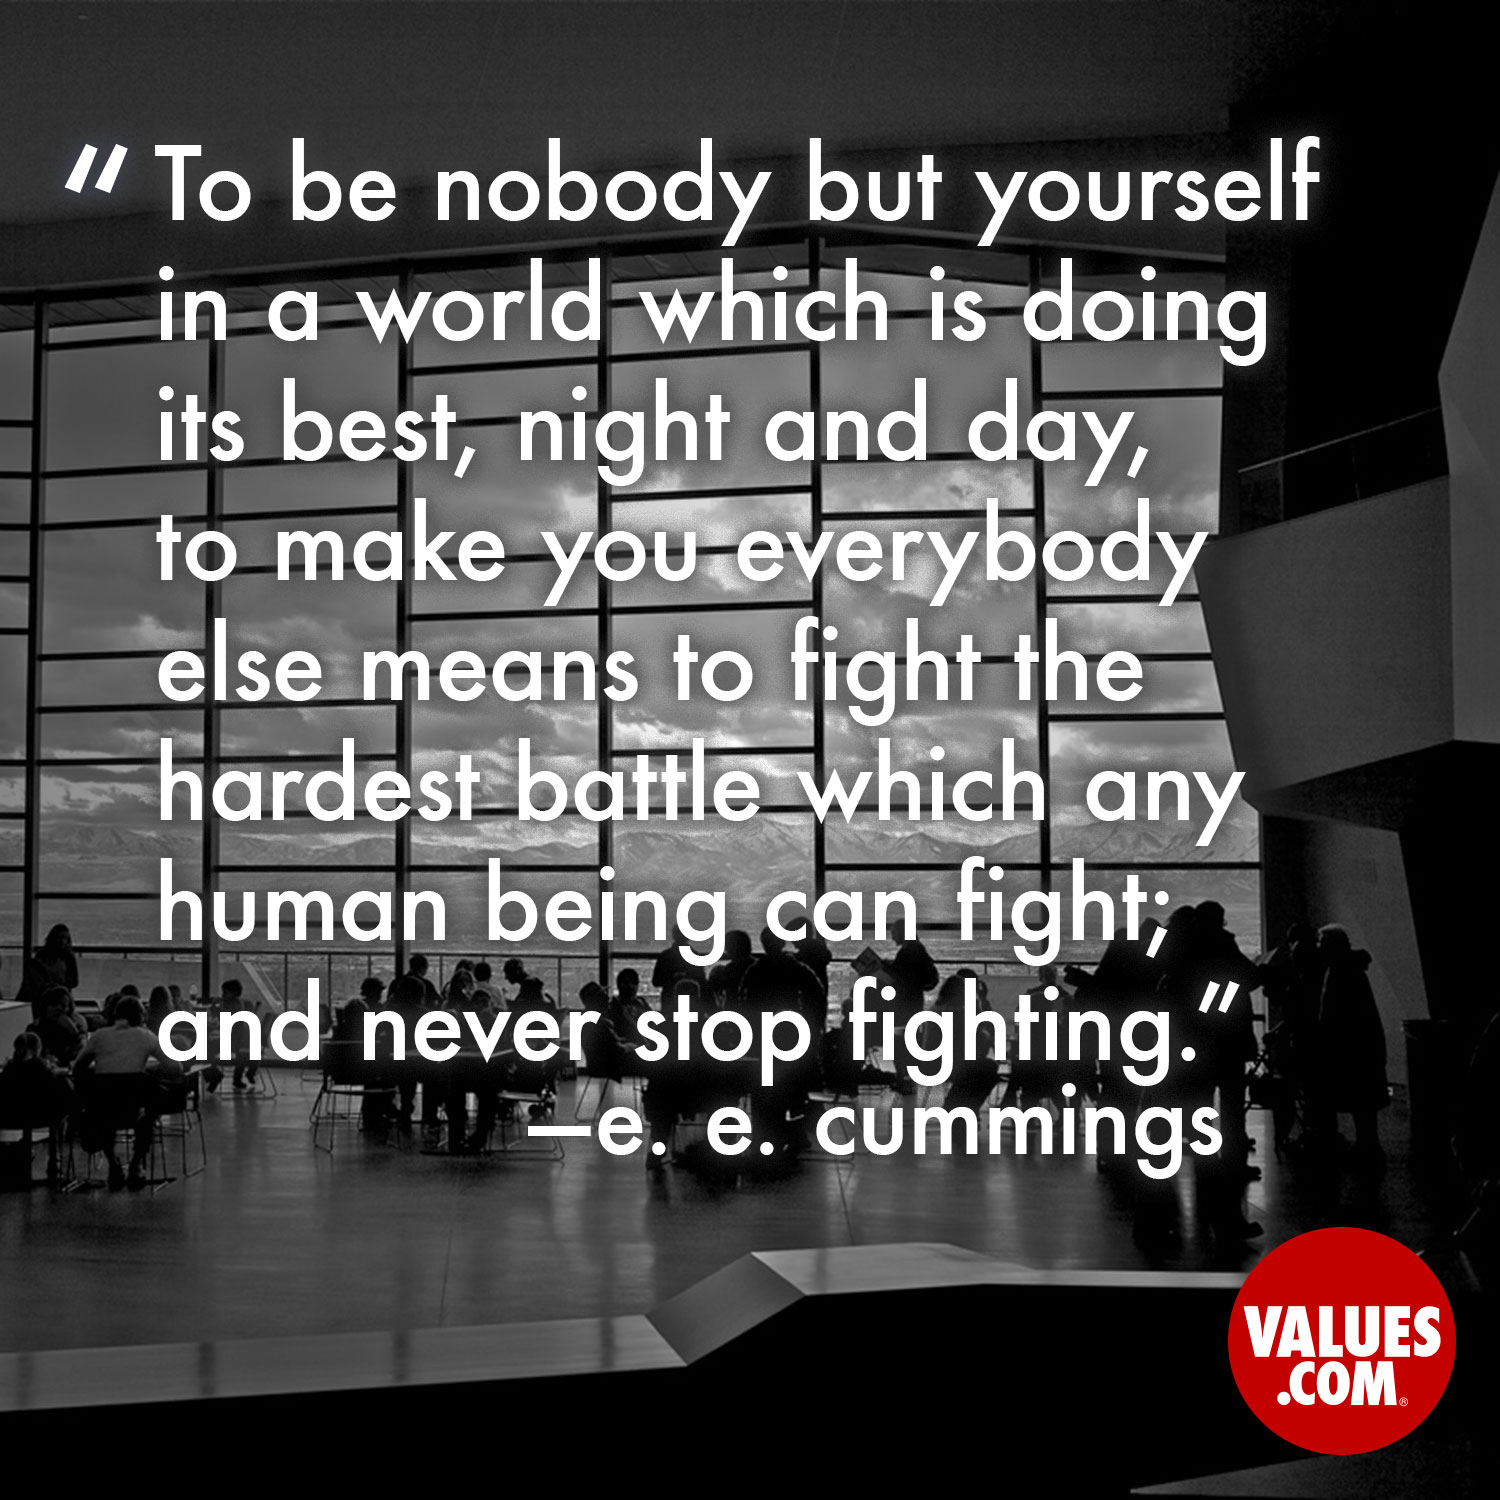 To be nobody but yourself in a world which is doing its best, night and day, to make you everybody else means to fight the hardest battle which any human being can fight; and never stop fighting. —e. e. cummings